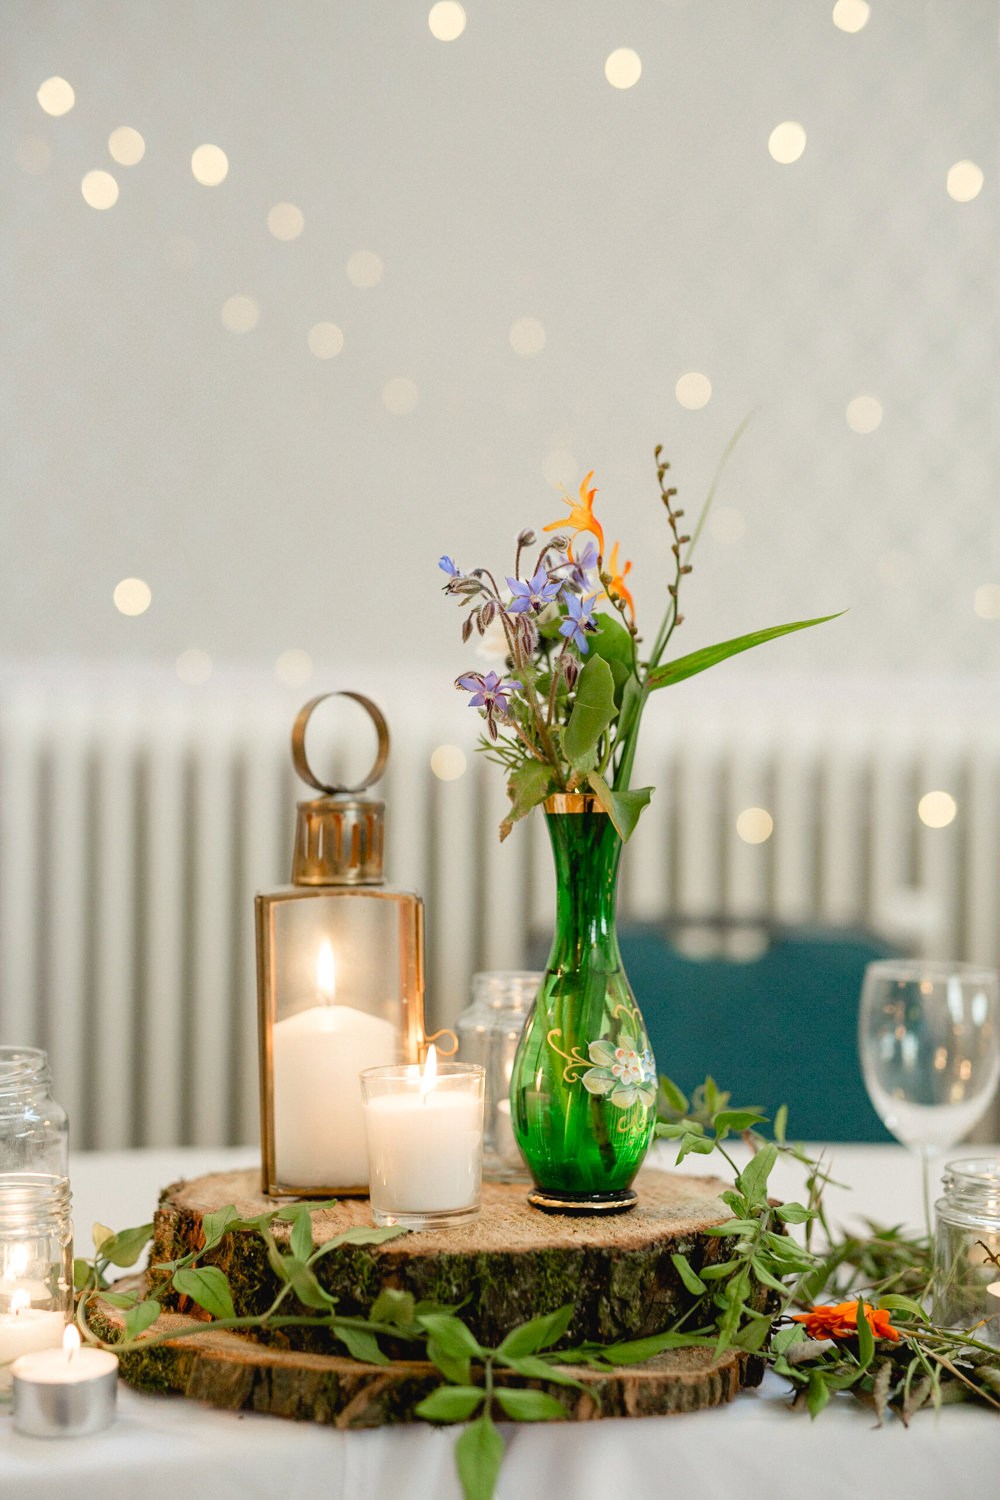 Centrepiece Decor Log Slice Vase Bottle Flowers Candles Sheffield Town Hall Wedding Mark Newton Wedding Photography